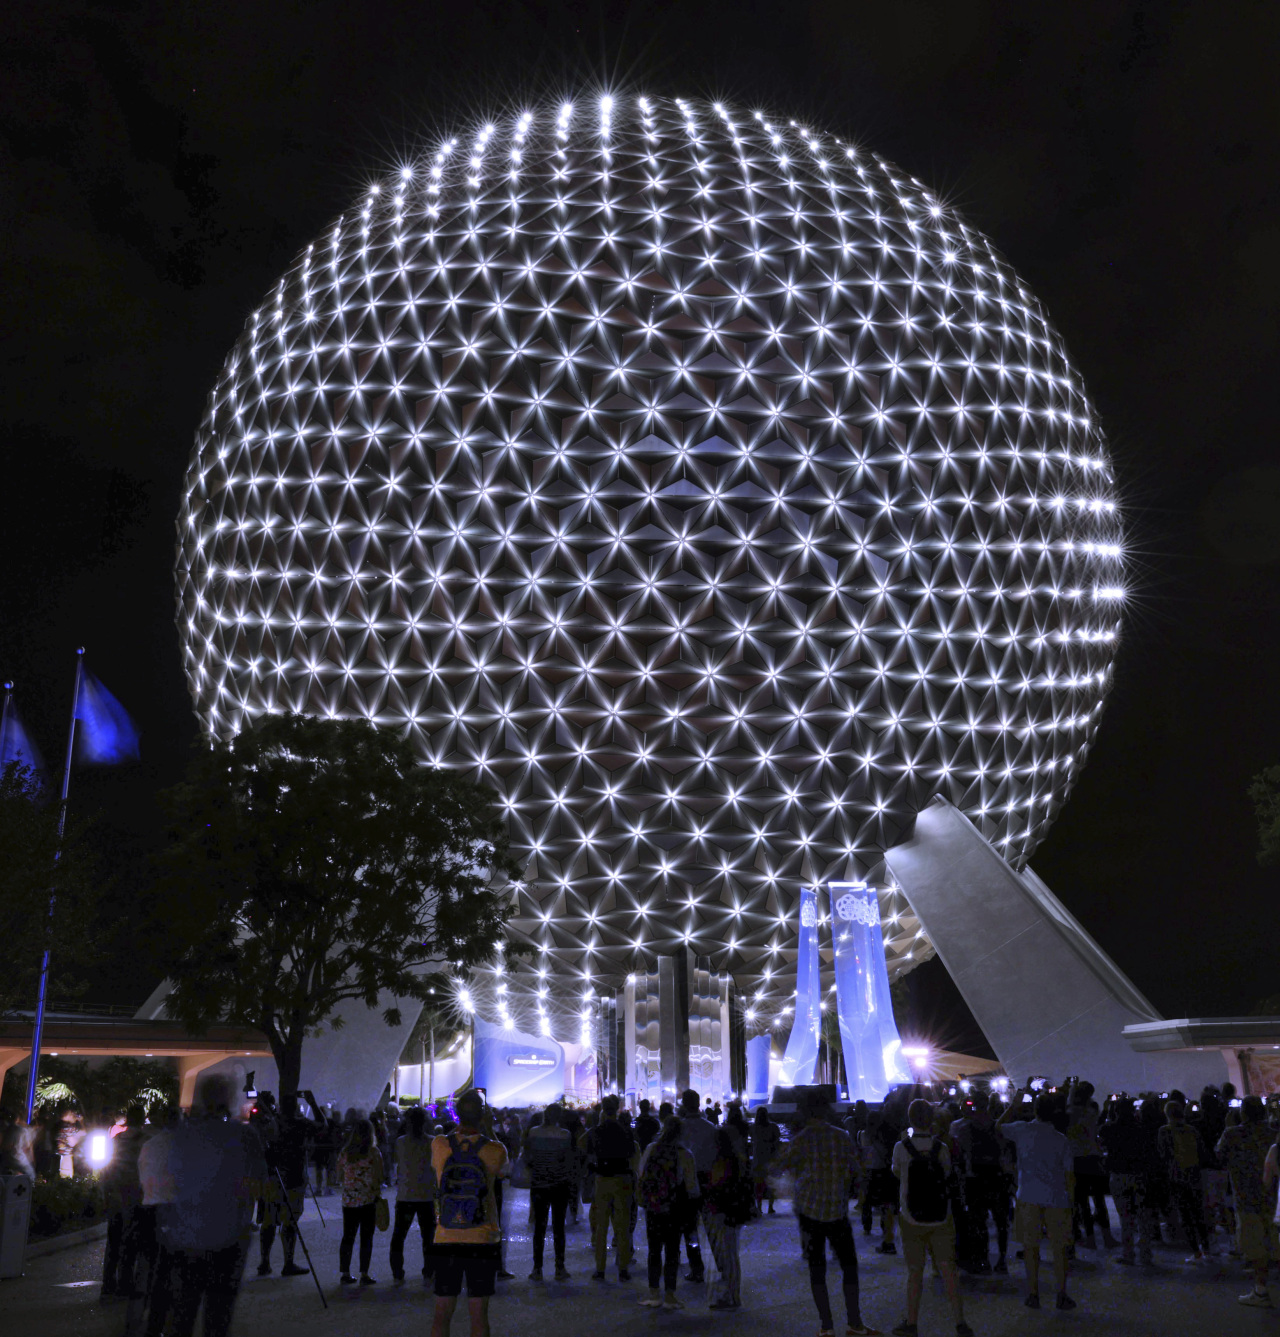 Spaceship Earth at Epcot displays an all-new, first-of-its-kind programmable LED lighting system.